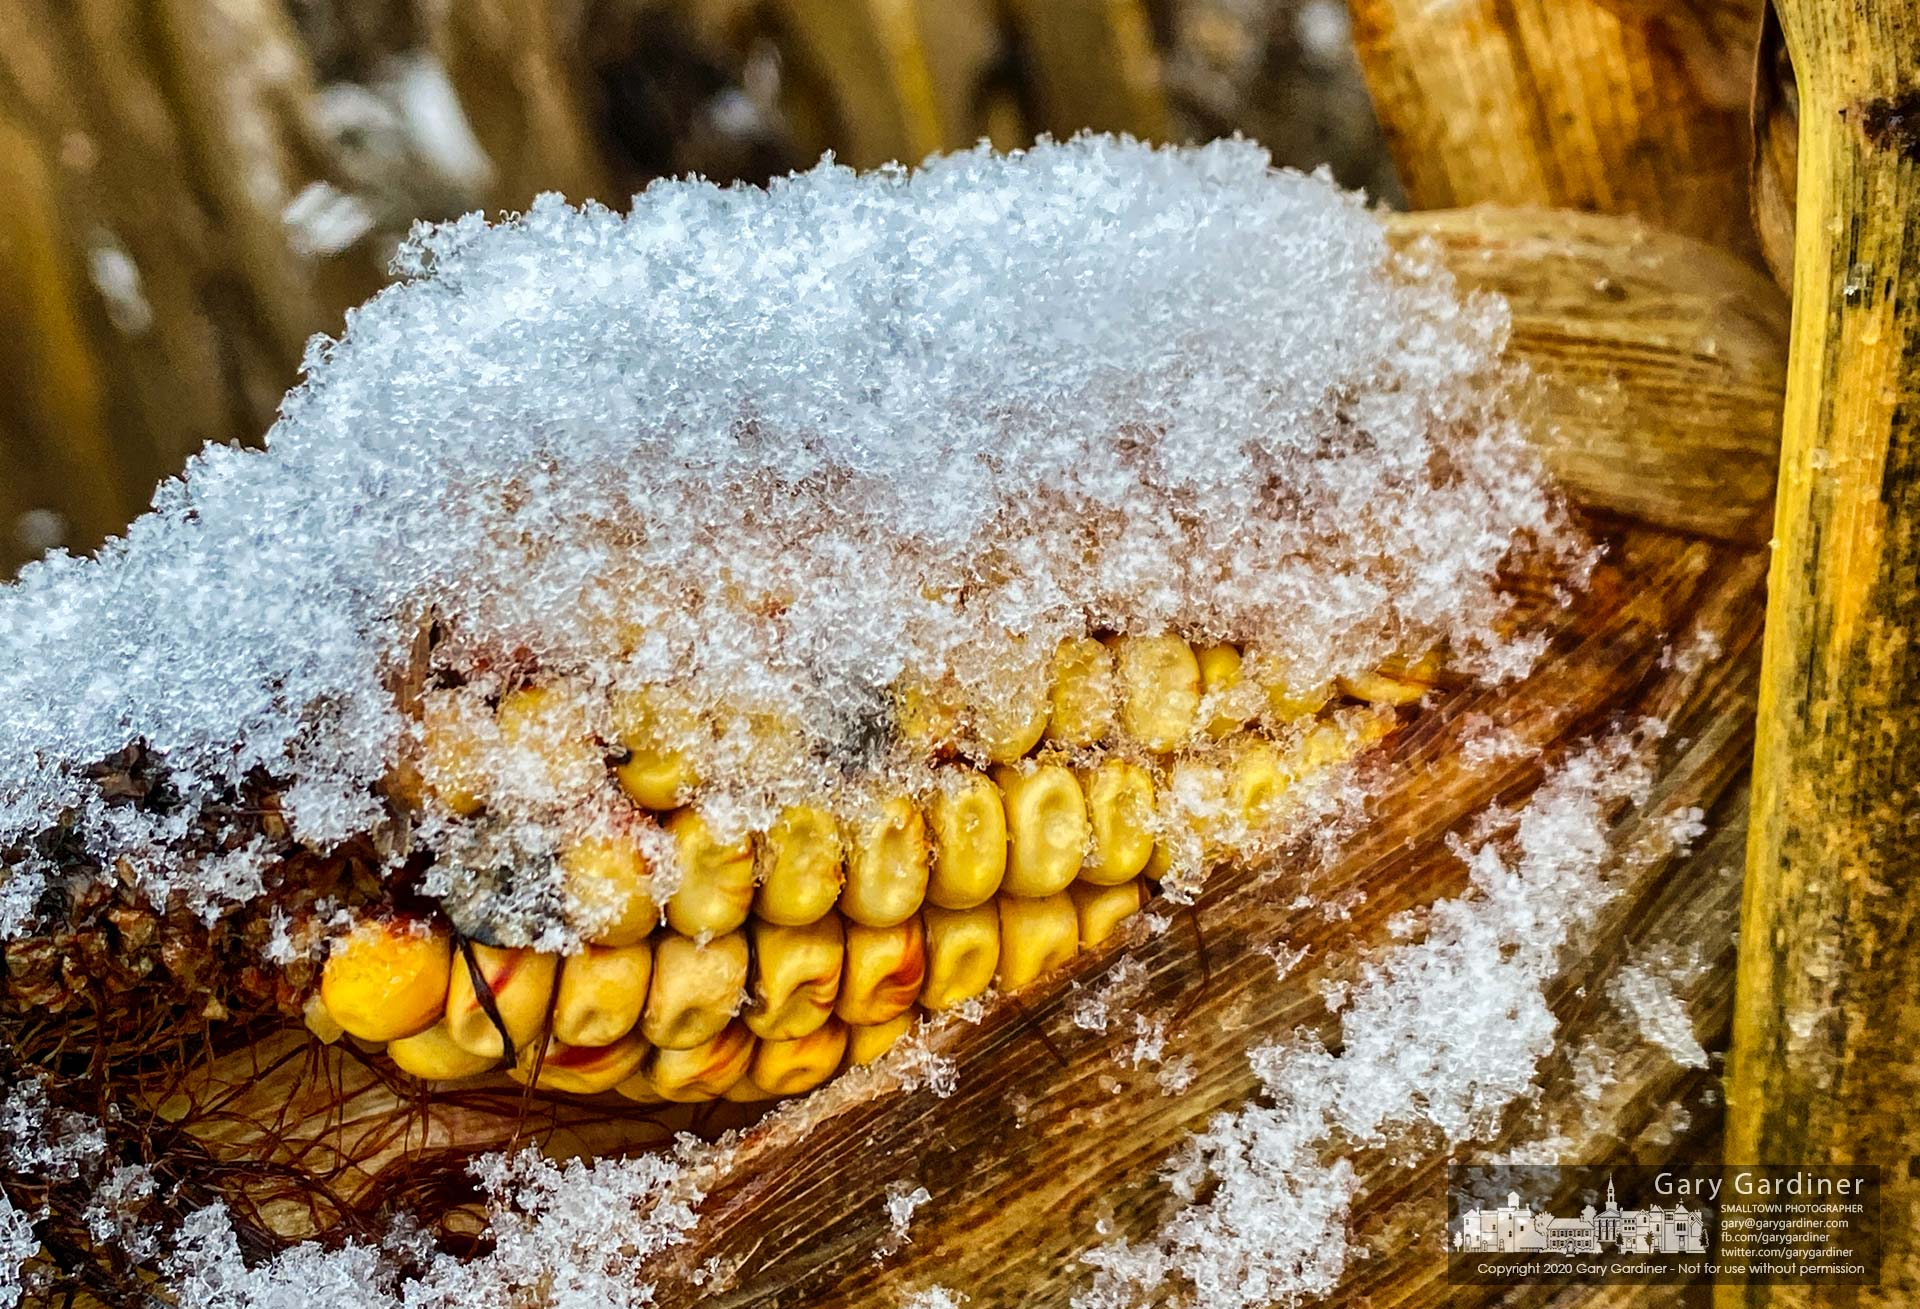 An ear of field corn is nestled under a blanket of ice and snow as the first snow of the season settled on the Braun Farm fields. My Final Photo for Nov. 30, 2020.